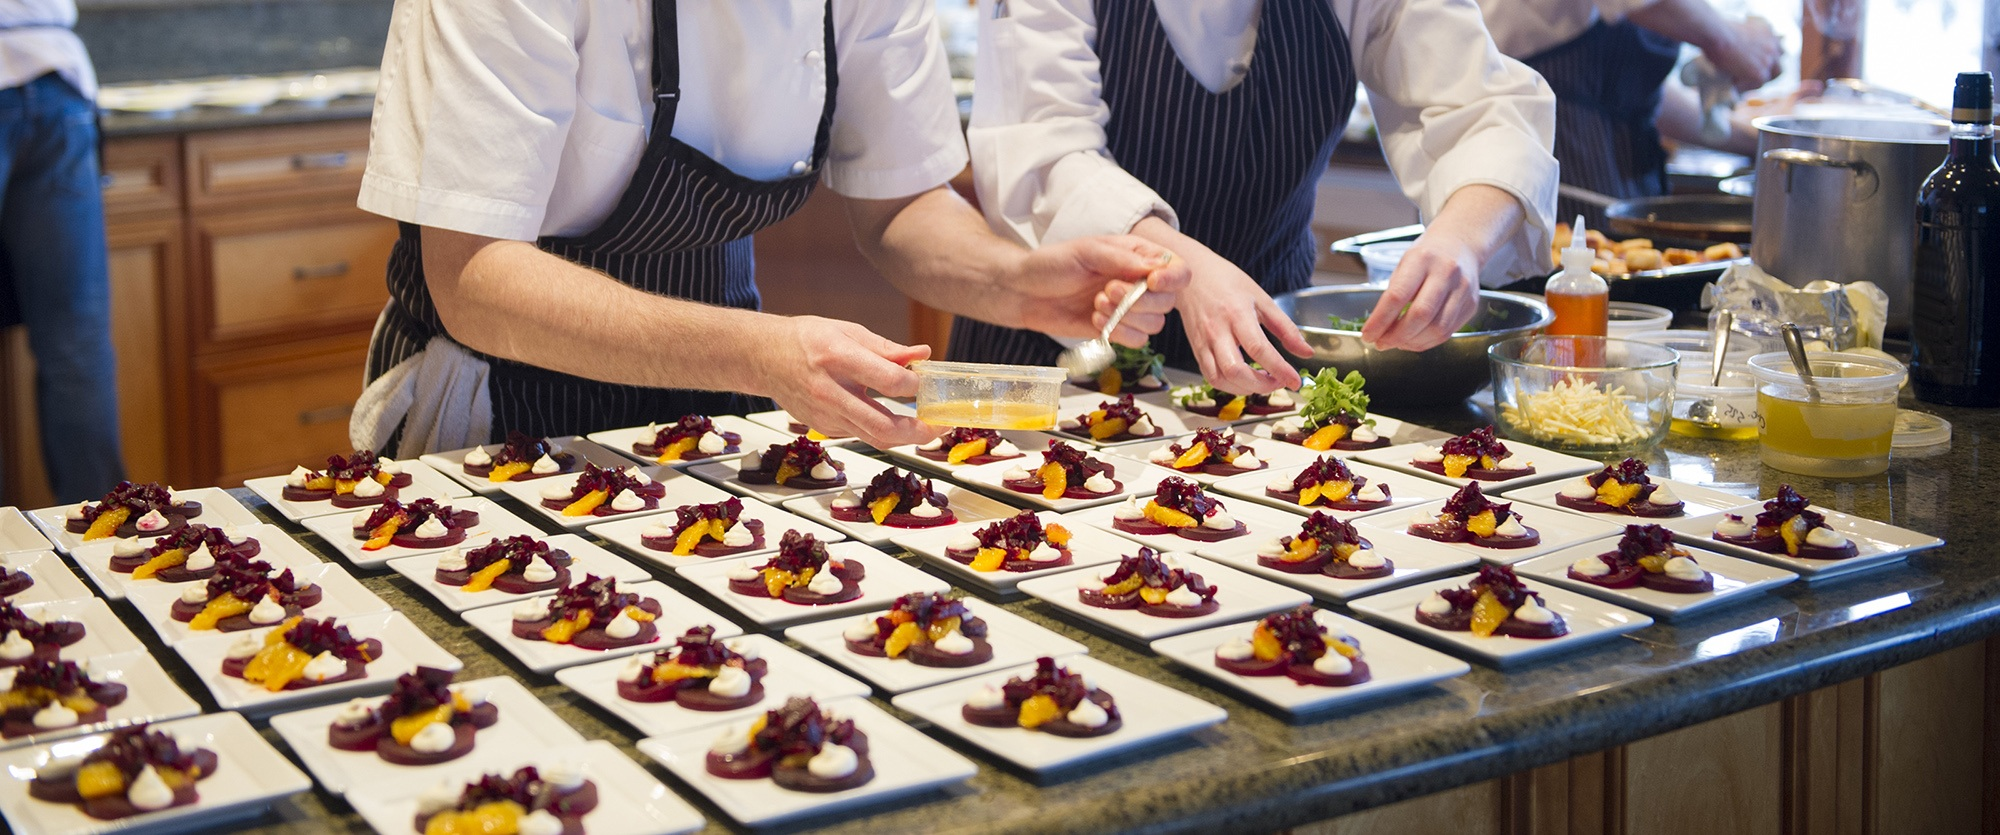 Chefs plating up a beet salad